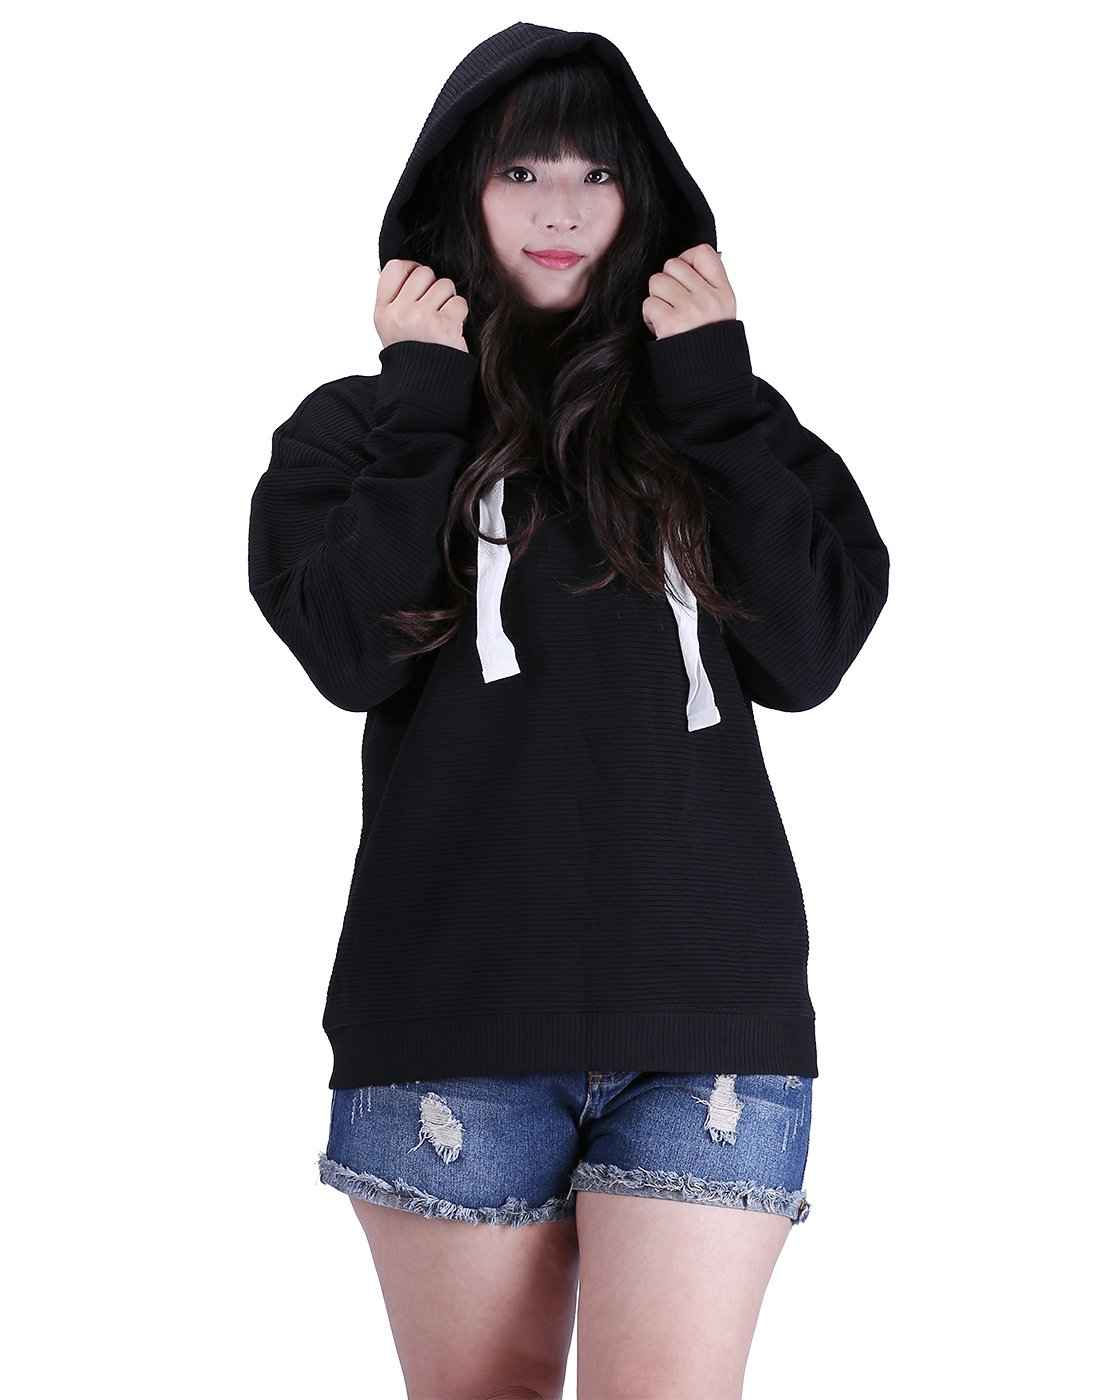 HDE Women Active Plus Size Hoodie Workout Gym Athletic Fashion Hooded Sweatshirt